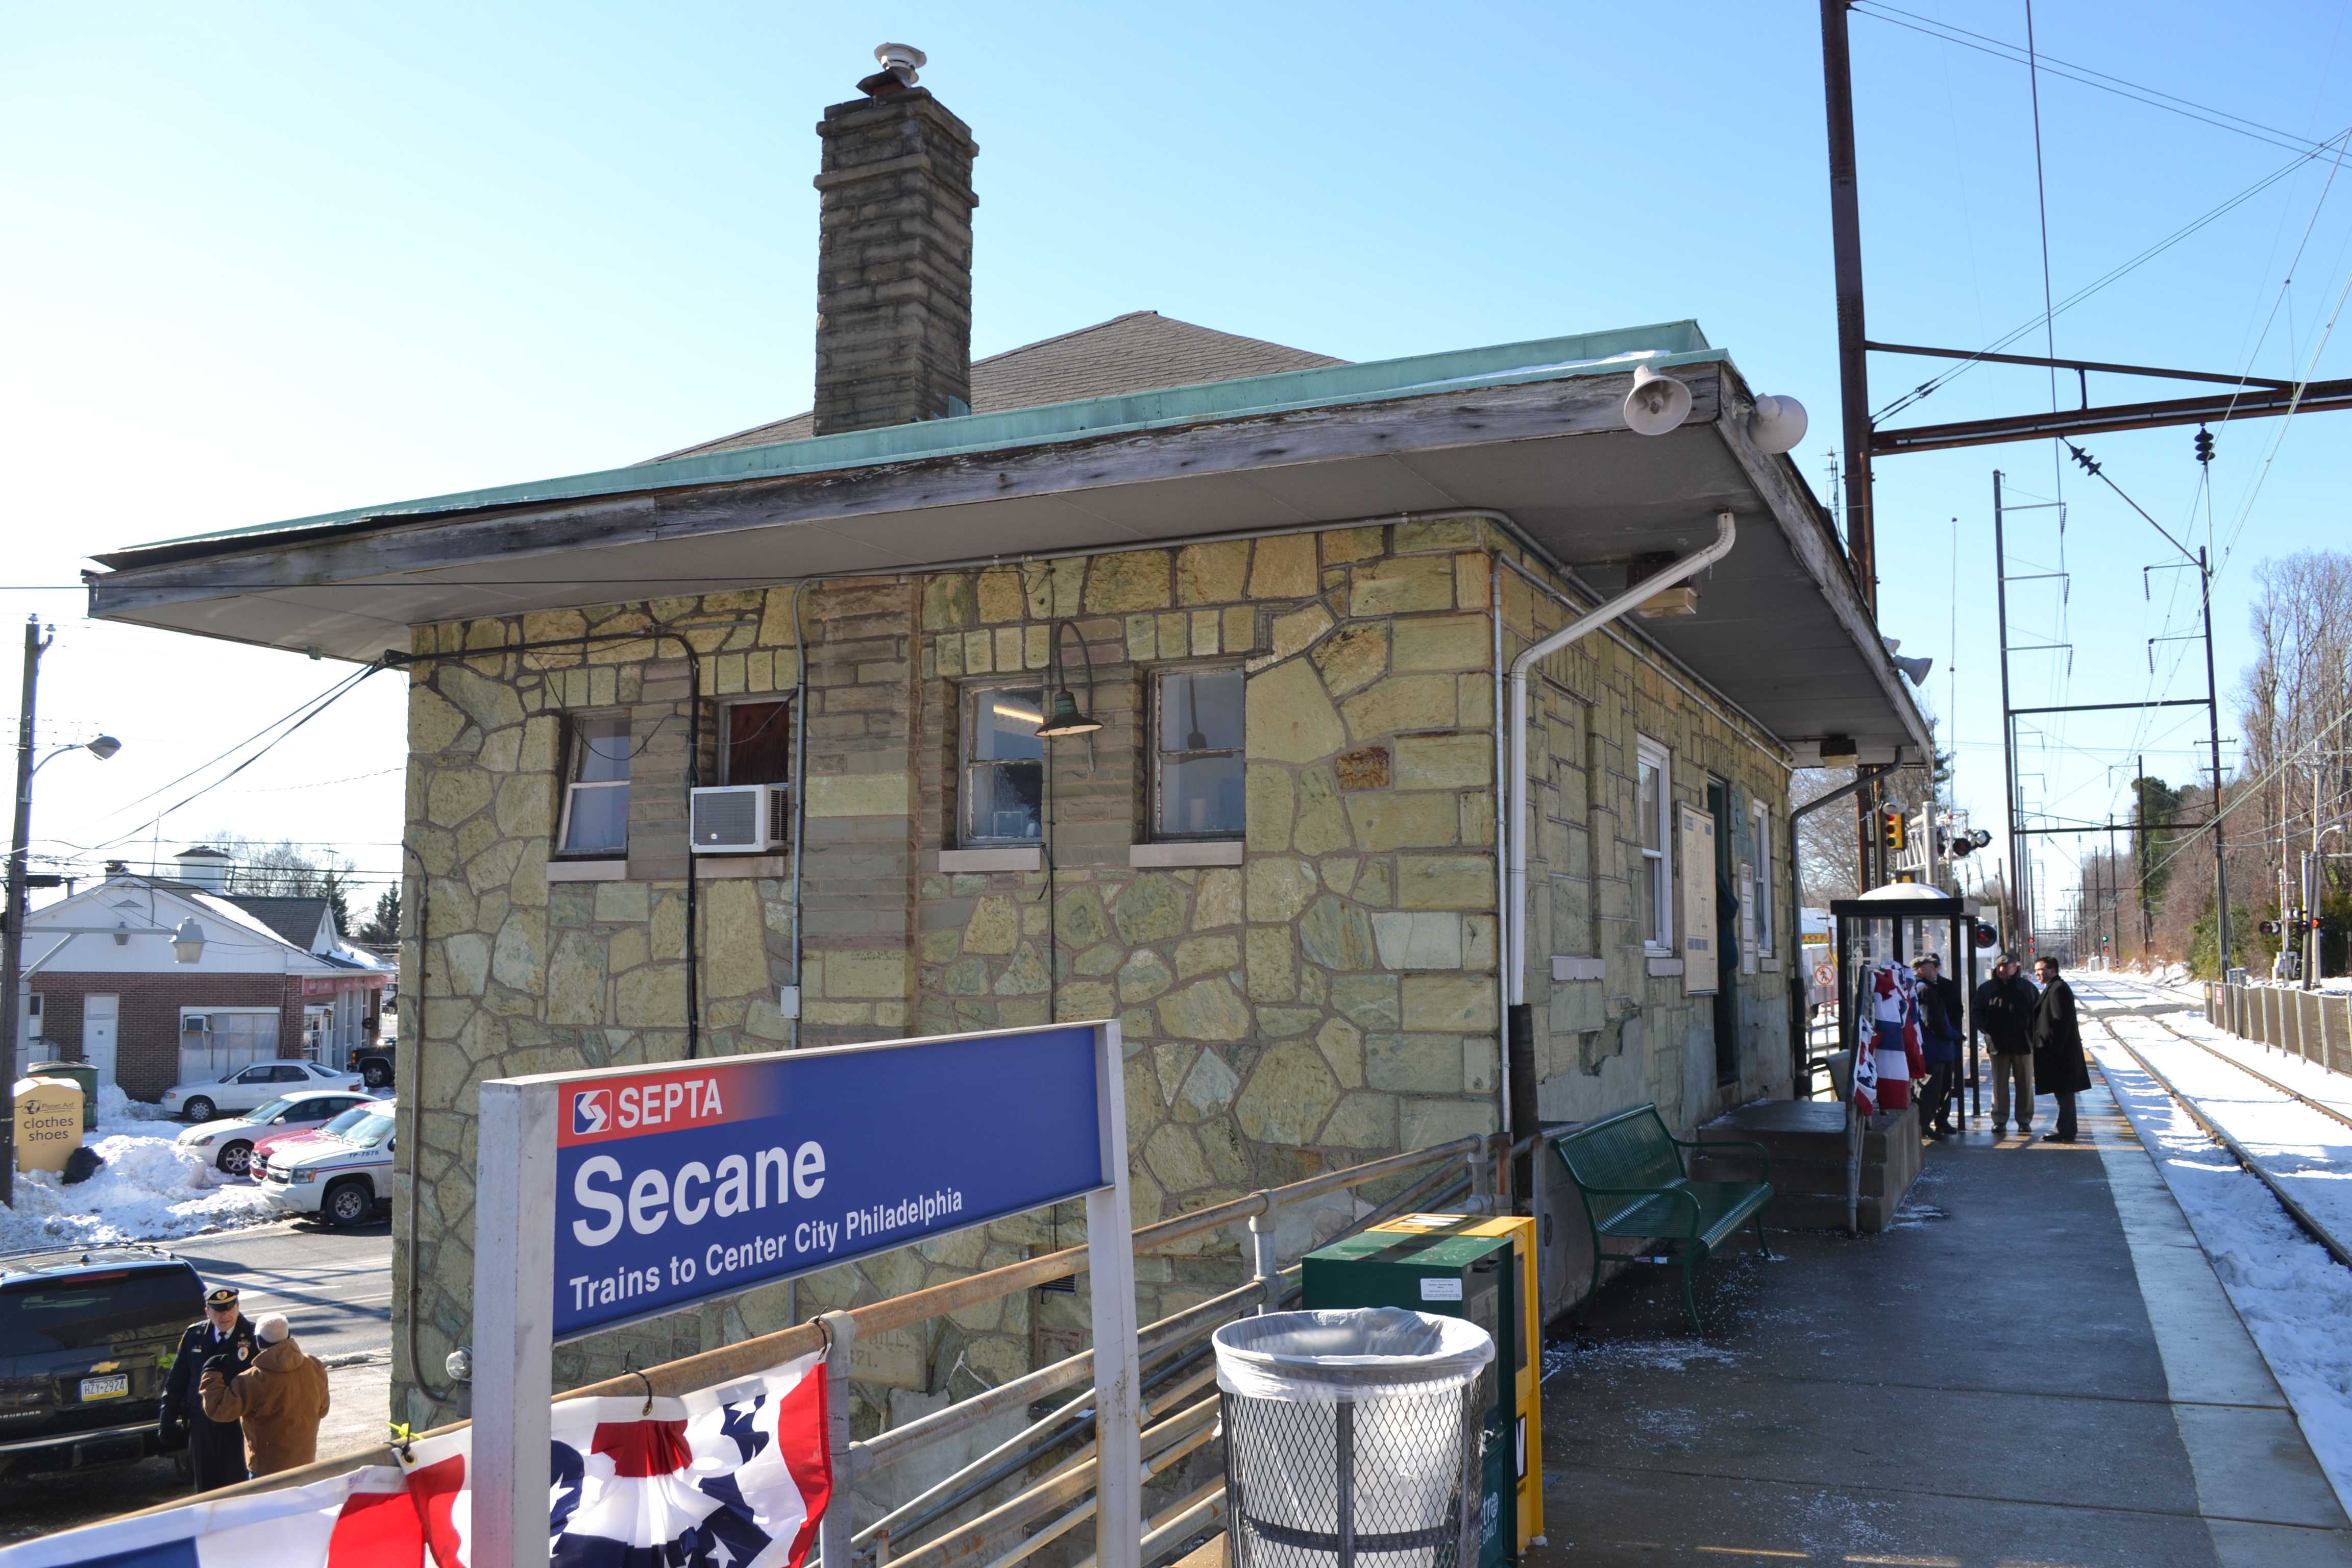 Secane Station will receive a $21 million overhaul beginning in 2015